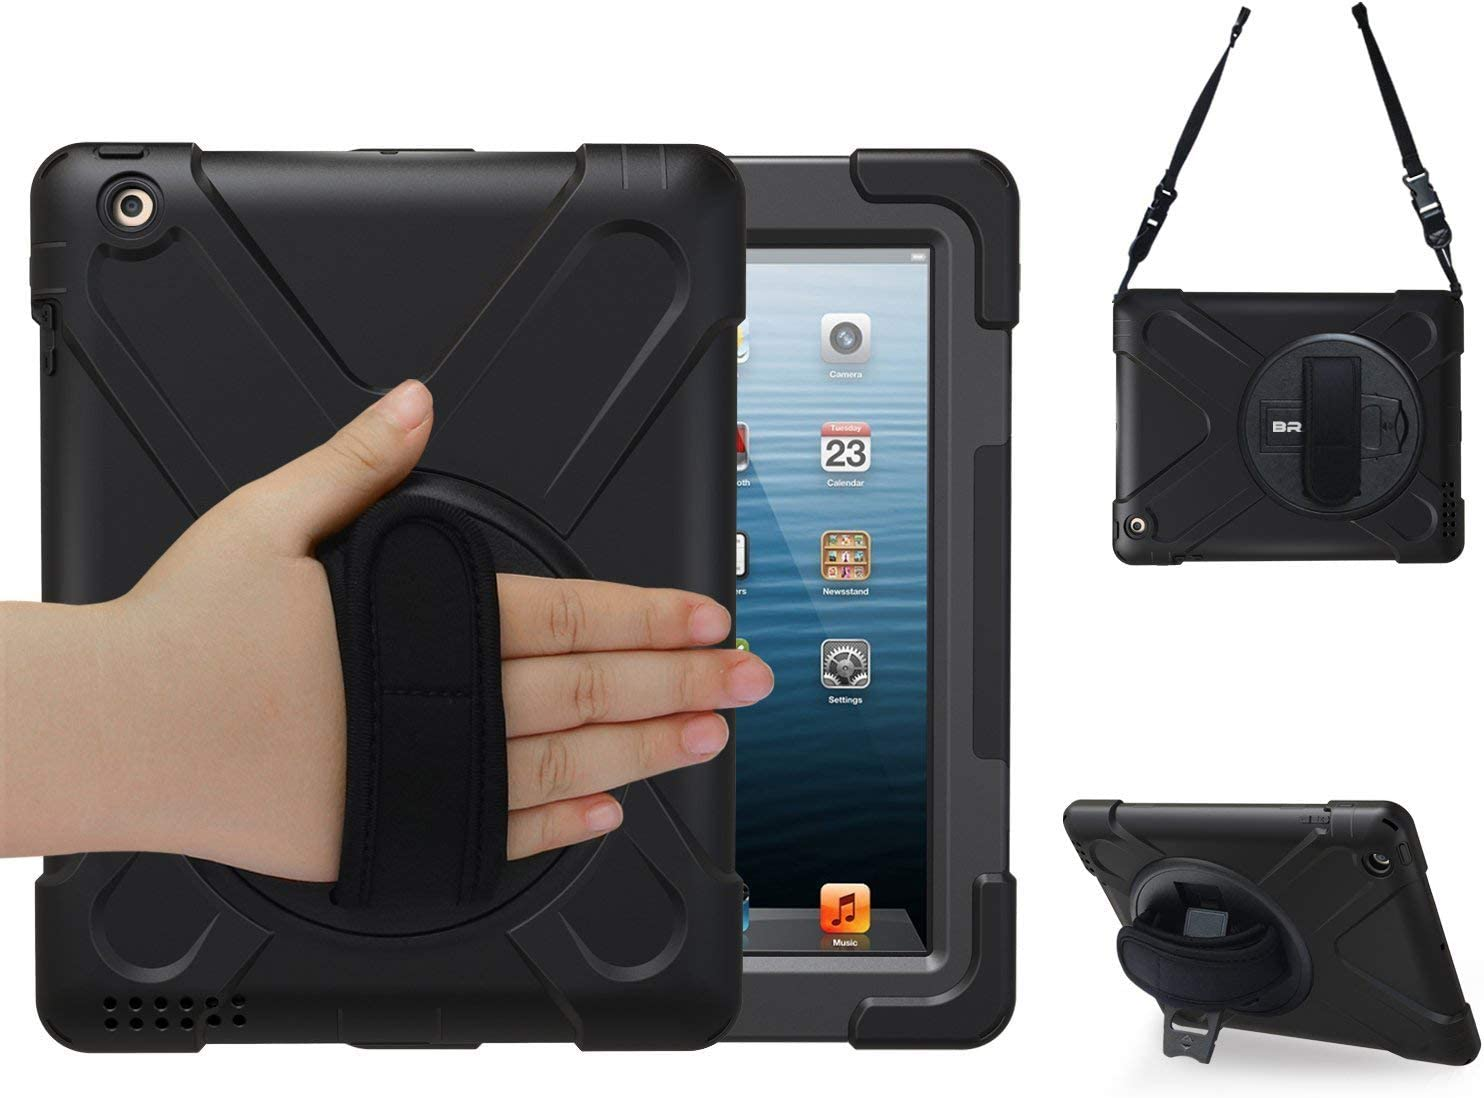 BRAECN iPad 4 Case,iPad 3 Case,iPad 2 Case   Shock-Absorption Three Layer Armor Defender Protective Case [Heavy Duty] w/360° Rotatable Built-in Kickstand/Hand Strap for iPad 2/3/4 Kids Case (Black)